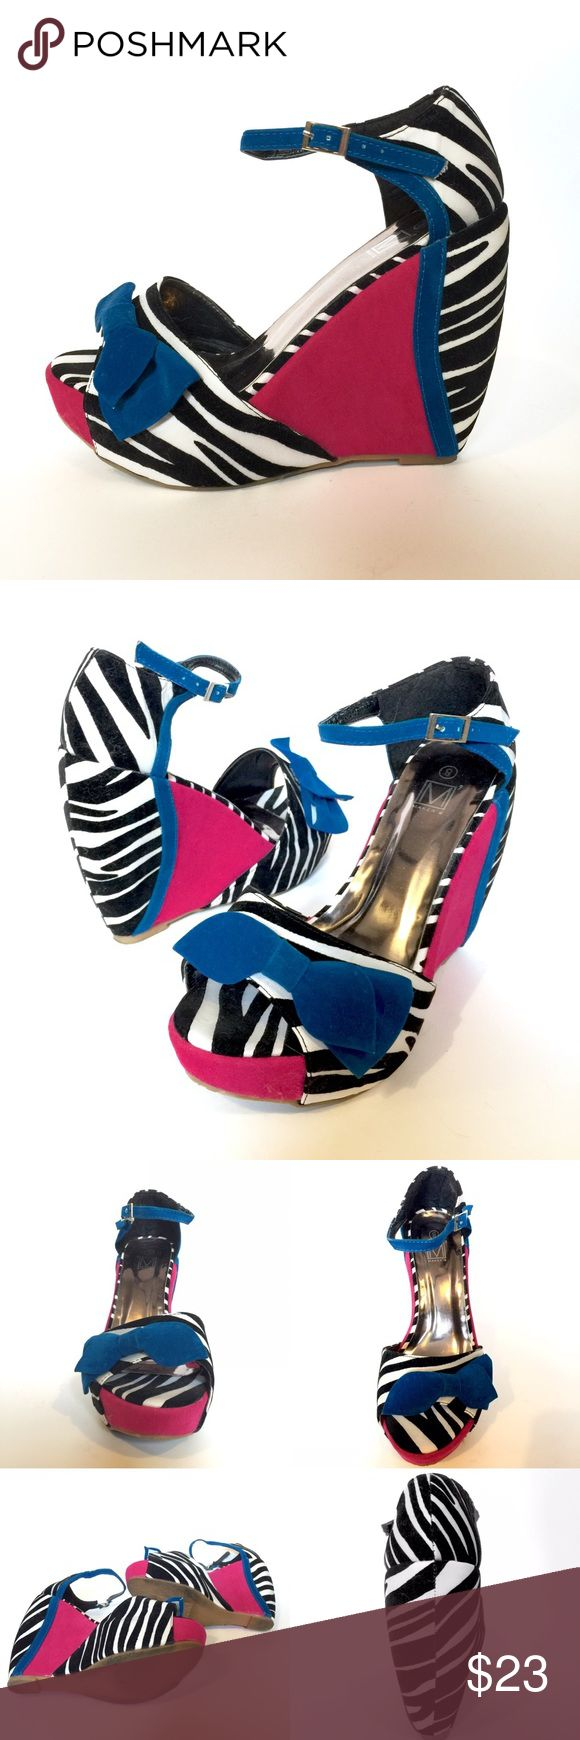 Maker's Zebra Print & Hot Pink Wedge Sandals Like-new condition, zebra print Maker's wedge sandals. Vibrant pink color accents with true blue trim and strap. Size 8. All items come from a smoke-free home. Tags: vintage, retro, pinup, pin up, rockabilly, psychobilly, animal print, Bettie Page, Bernie Dexter, Tatyana, Kitschy, dolls kill, dollskill, nasty gal, YRU, platform, rave, kawaii, Japanese street style, iron fist makers Shoes Wedges